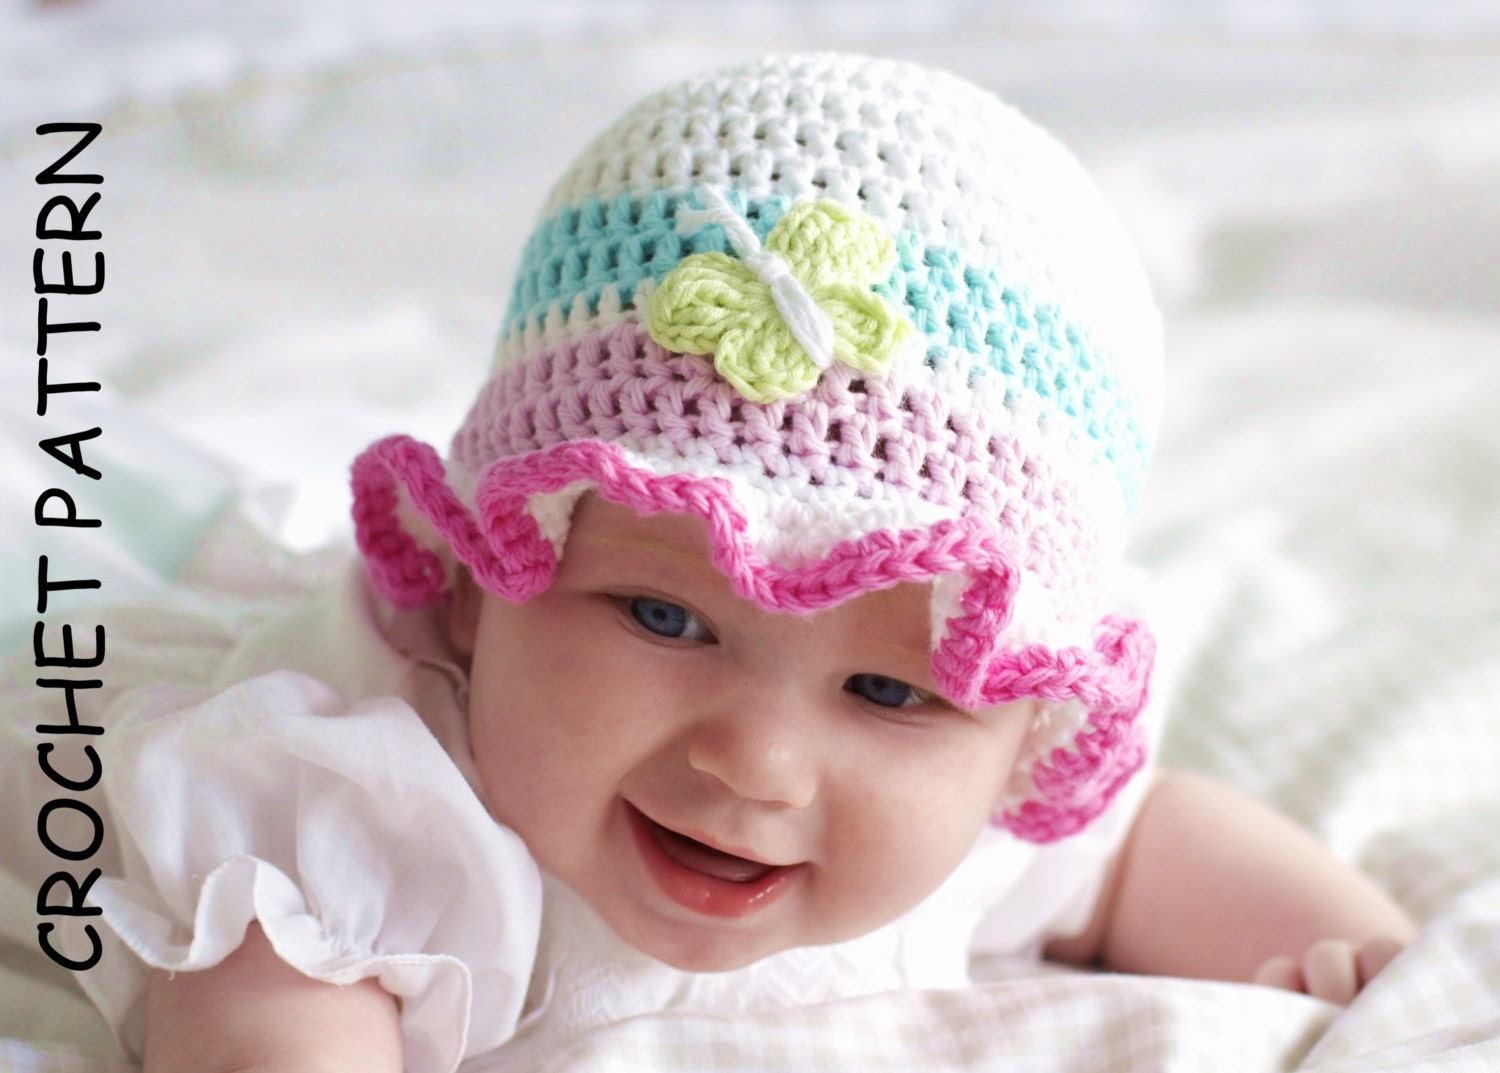 Dress little ones beautifully from head to toe with our collection of designer baby hats for baby boys and baby girls. With styles suitable for every occasion, our eclectic range includes cosy pom-pom hats for keeping warm in the winter, cute sun hats for protecting delicate heads from the sun's harmful rays, cool caps to be worn all year round, delicate bonnets for a more traditional look and.